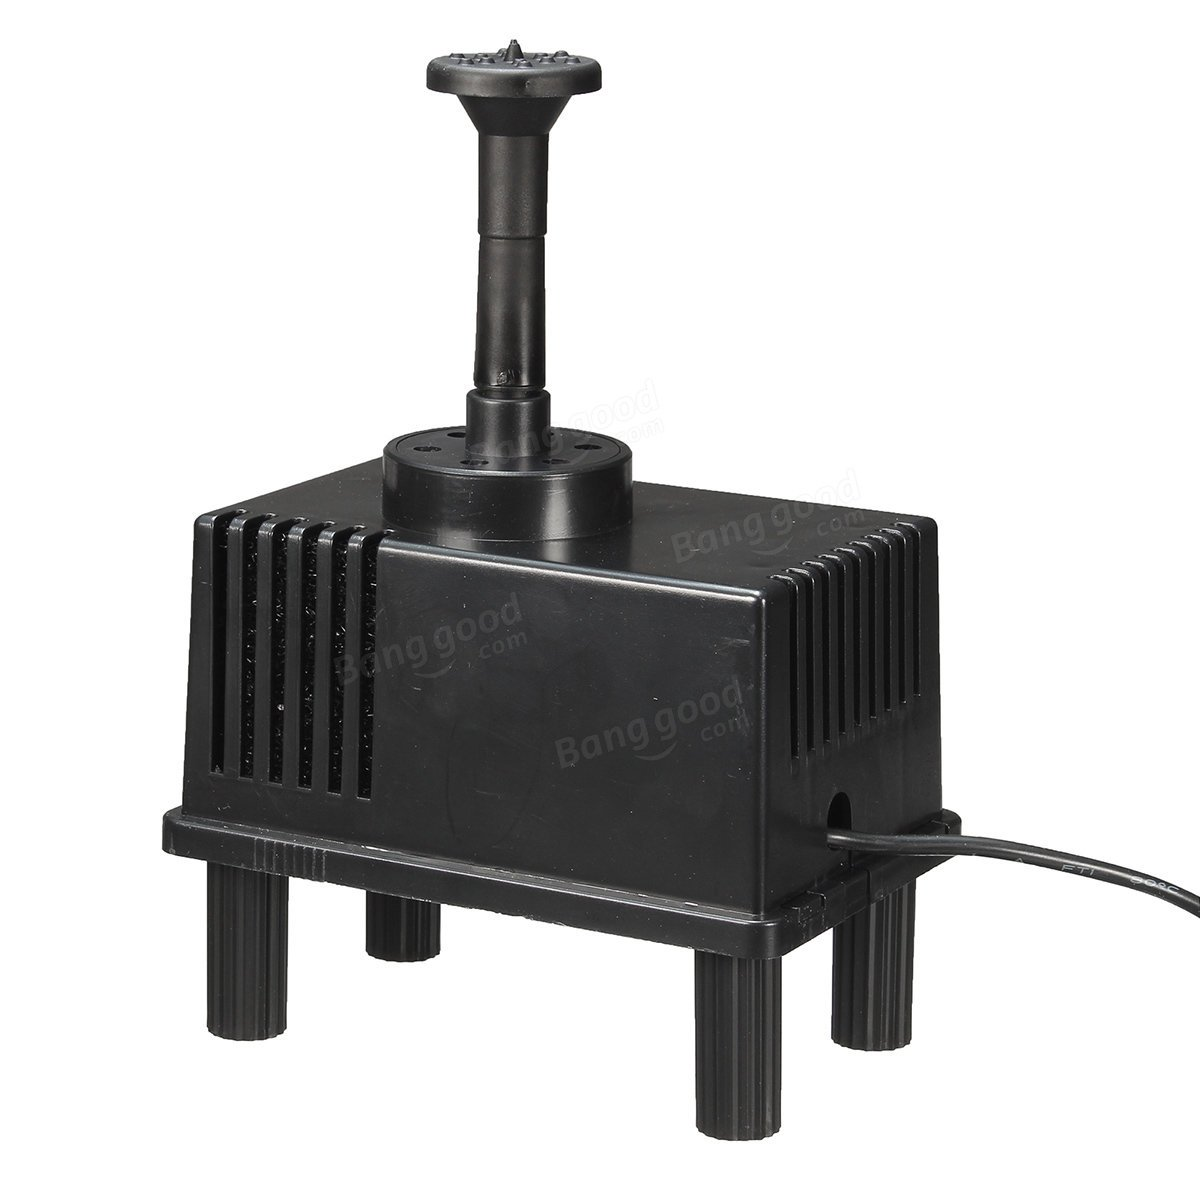 Solar Power Fountain Water Pump Panel Kit Pool Garden Pond Submersible Watering - Electrical Gadgets & Tools Electrical Pump & Valve